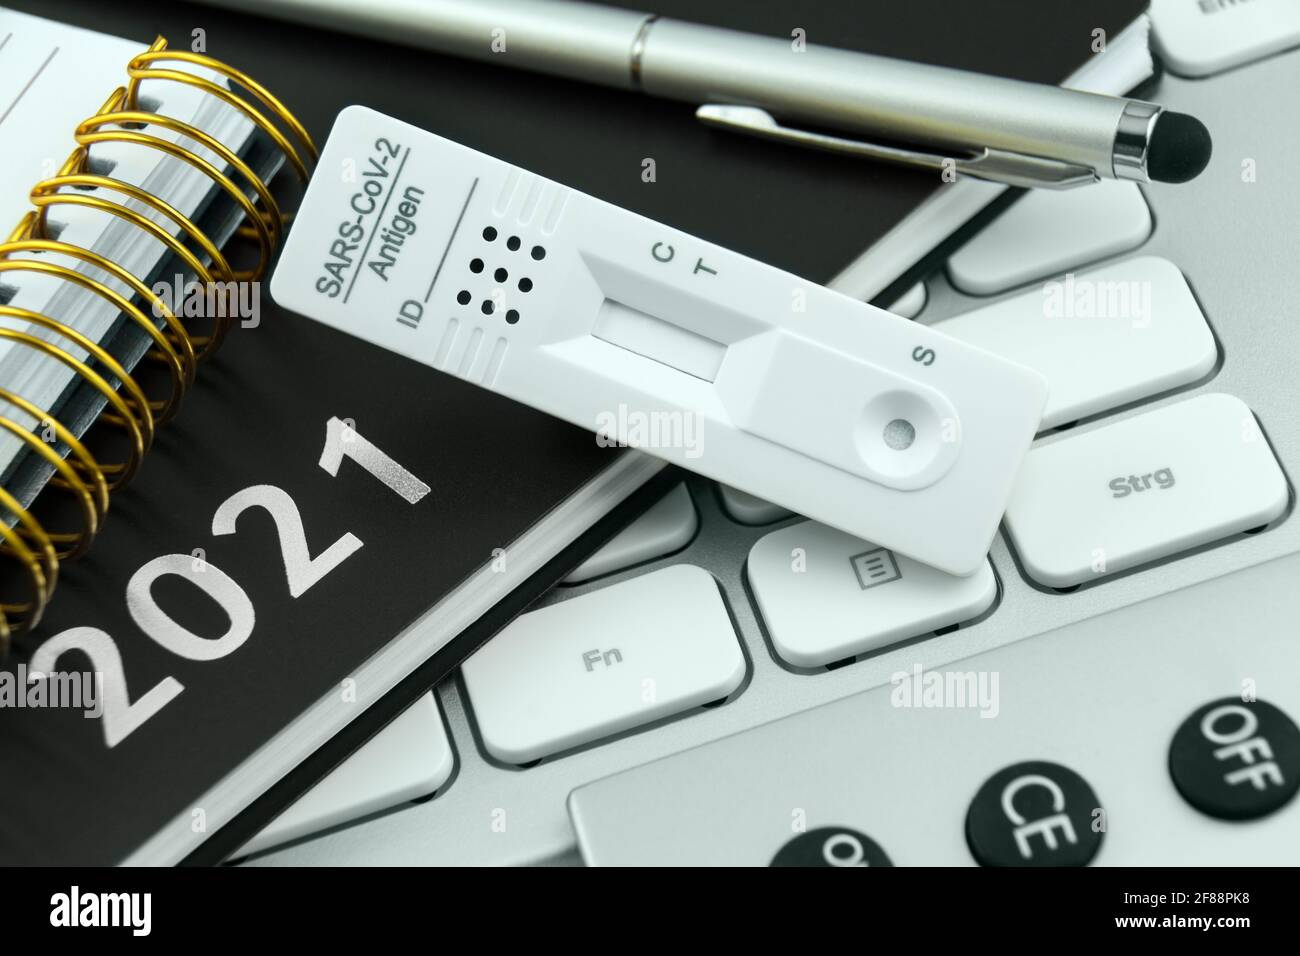 Corona Antigen Rapid Test and PC with calendar 2021 work station Stock Photo